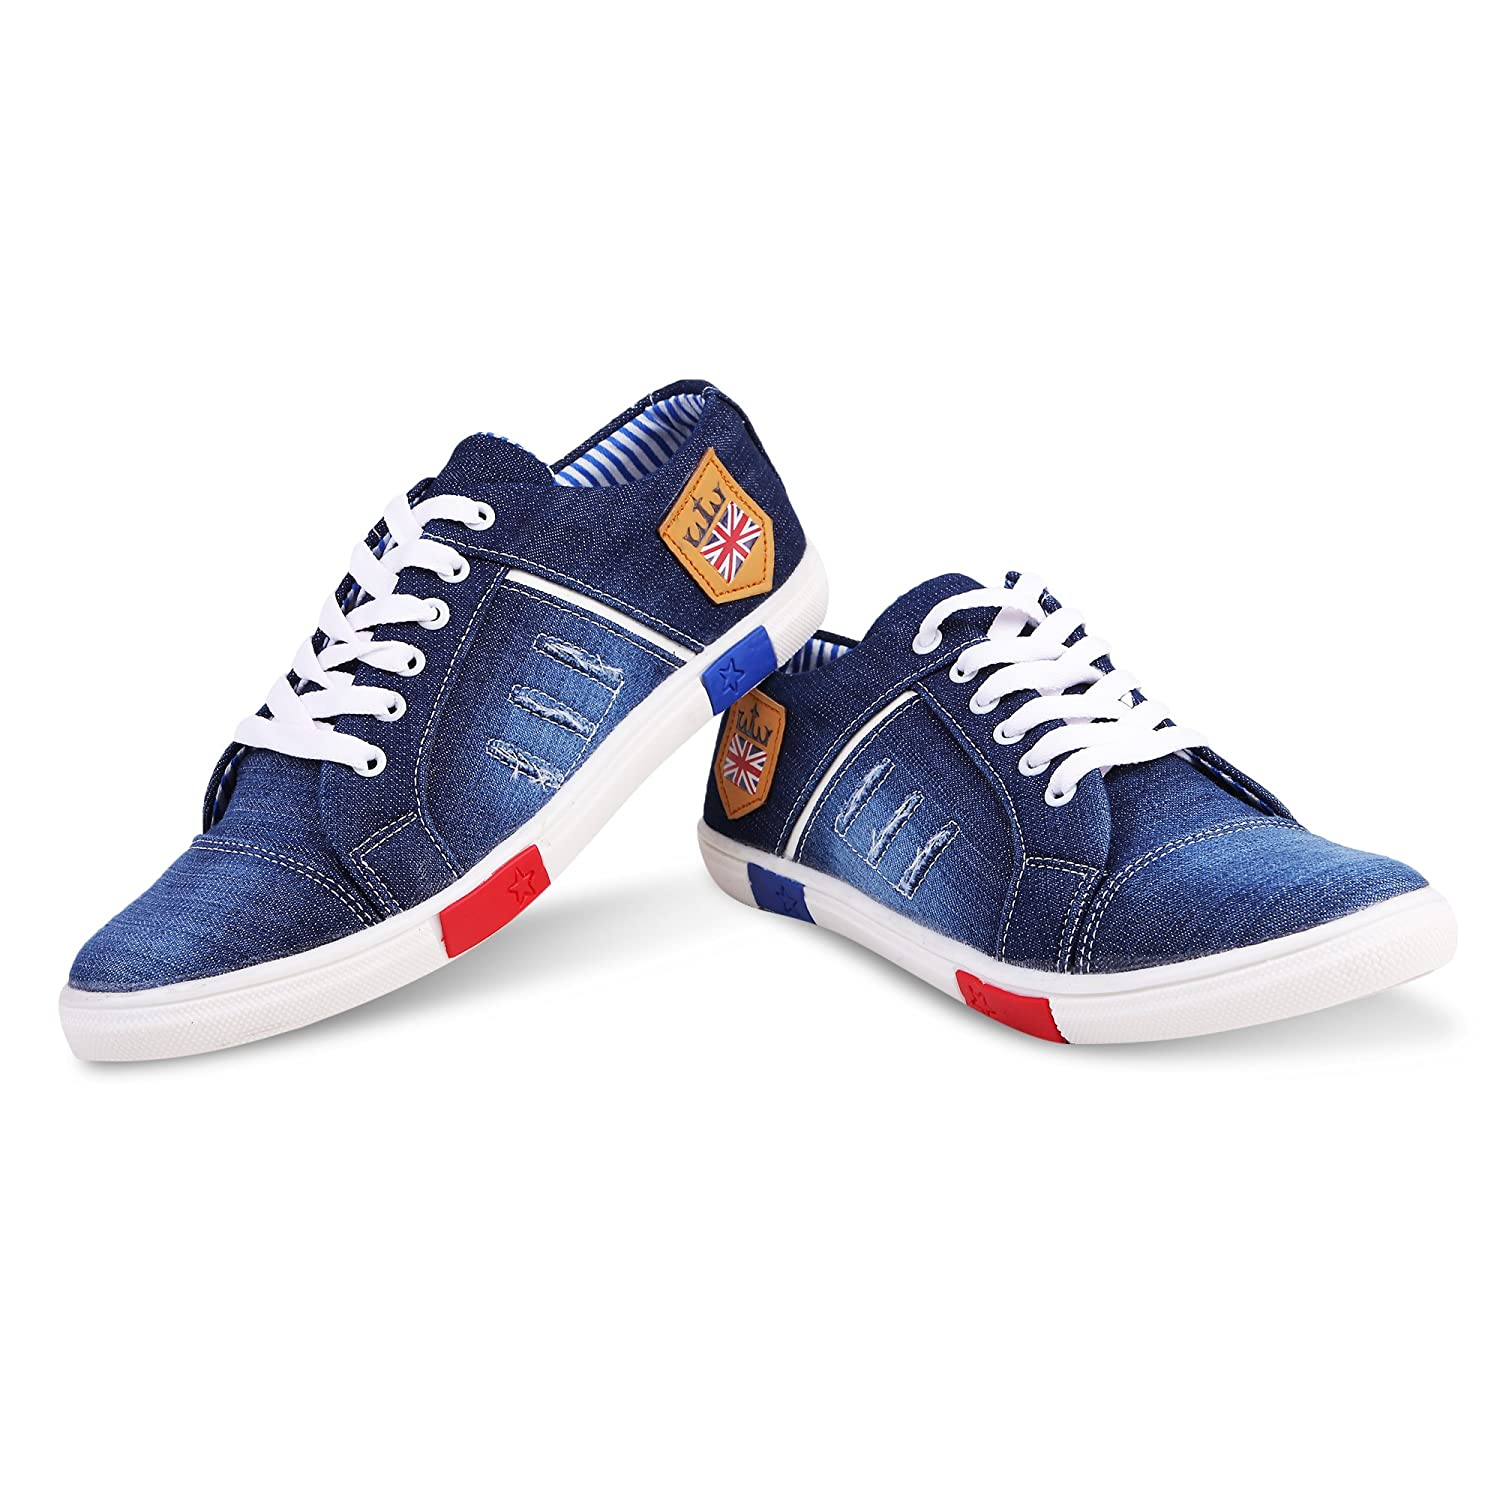 17cf5db9 Zovim Men's Denim Jeans Sneakers Casual Shoes - Blue: Buy Online at Low  Prices in India - Amazon.in